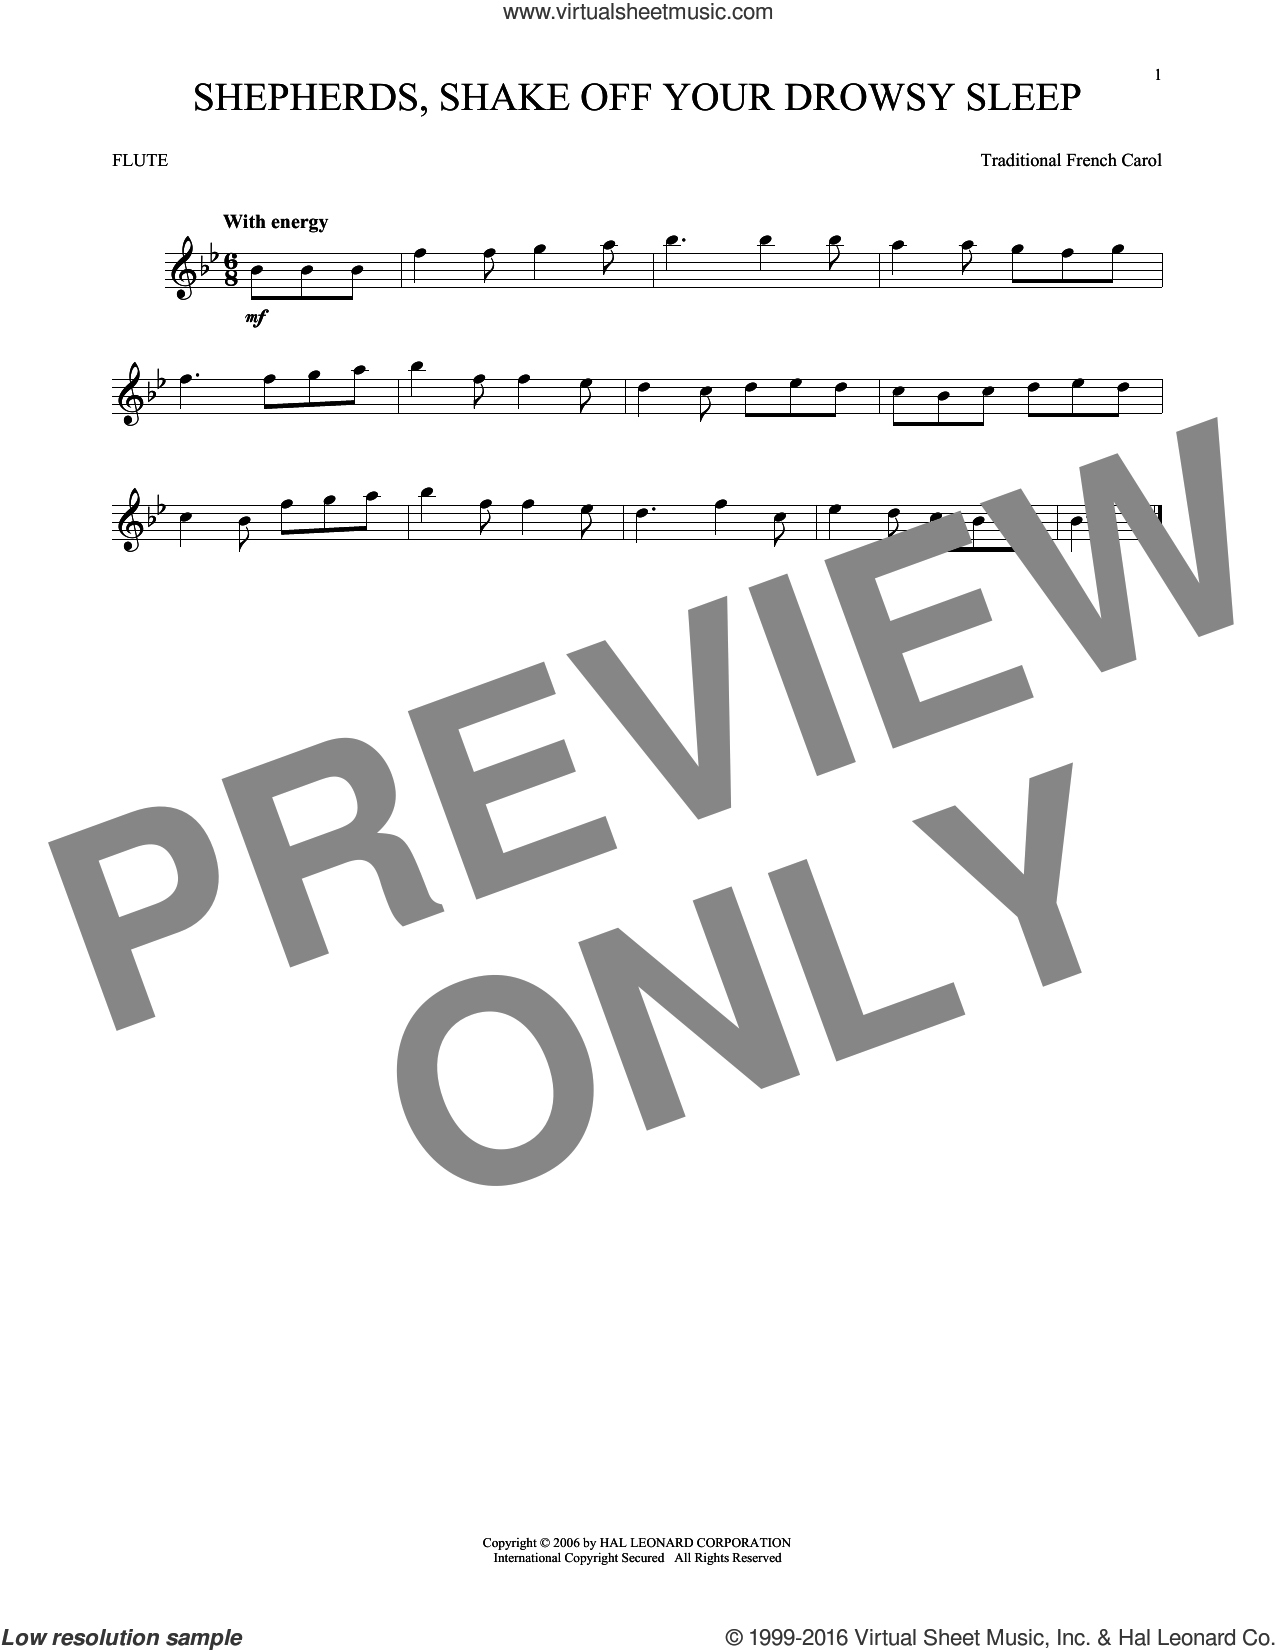 Shepherds, Shake Off Your Drowsy Sleep sheet music for flute solo, intermediate skill level